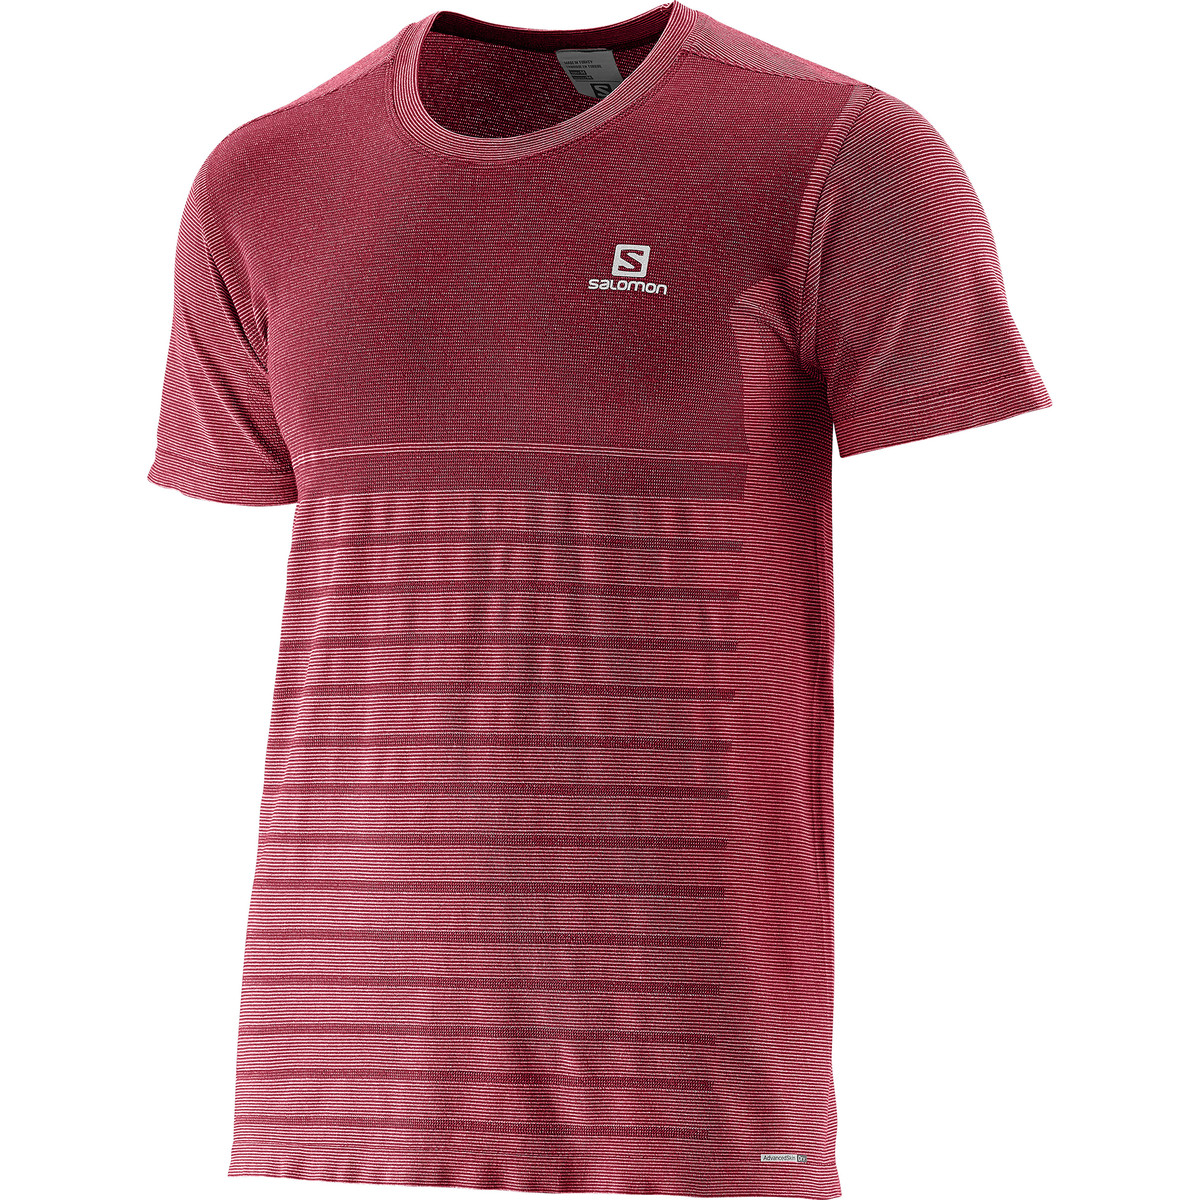 Salomon Elevate Seamless Tee